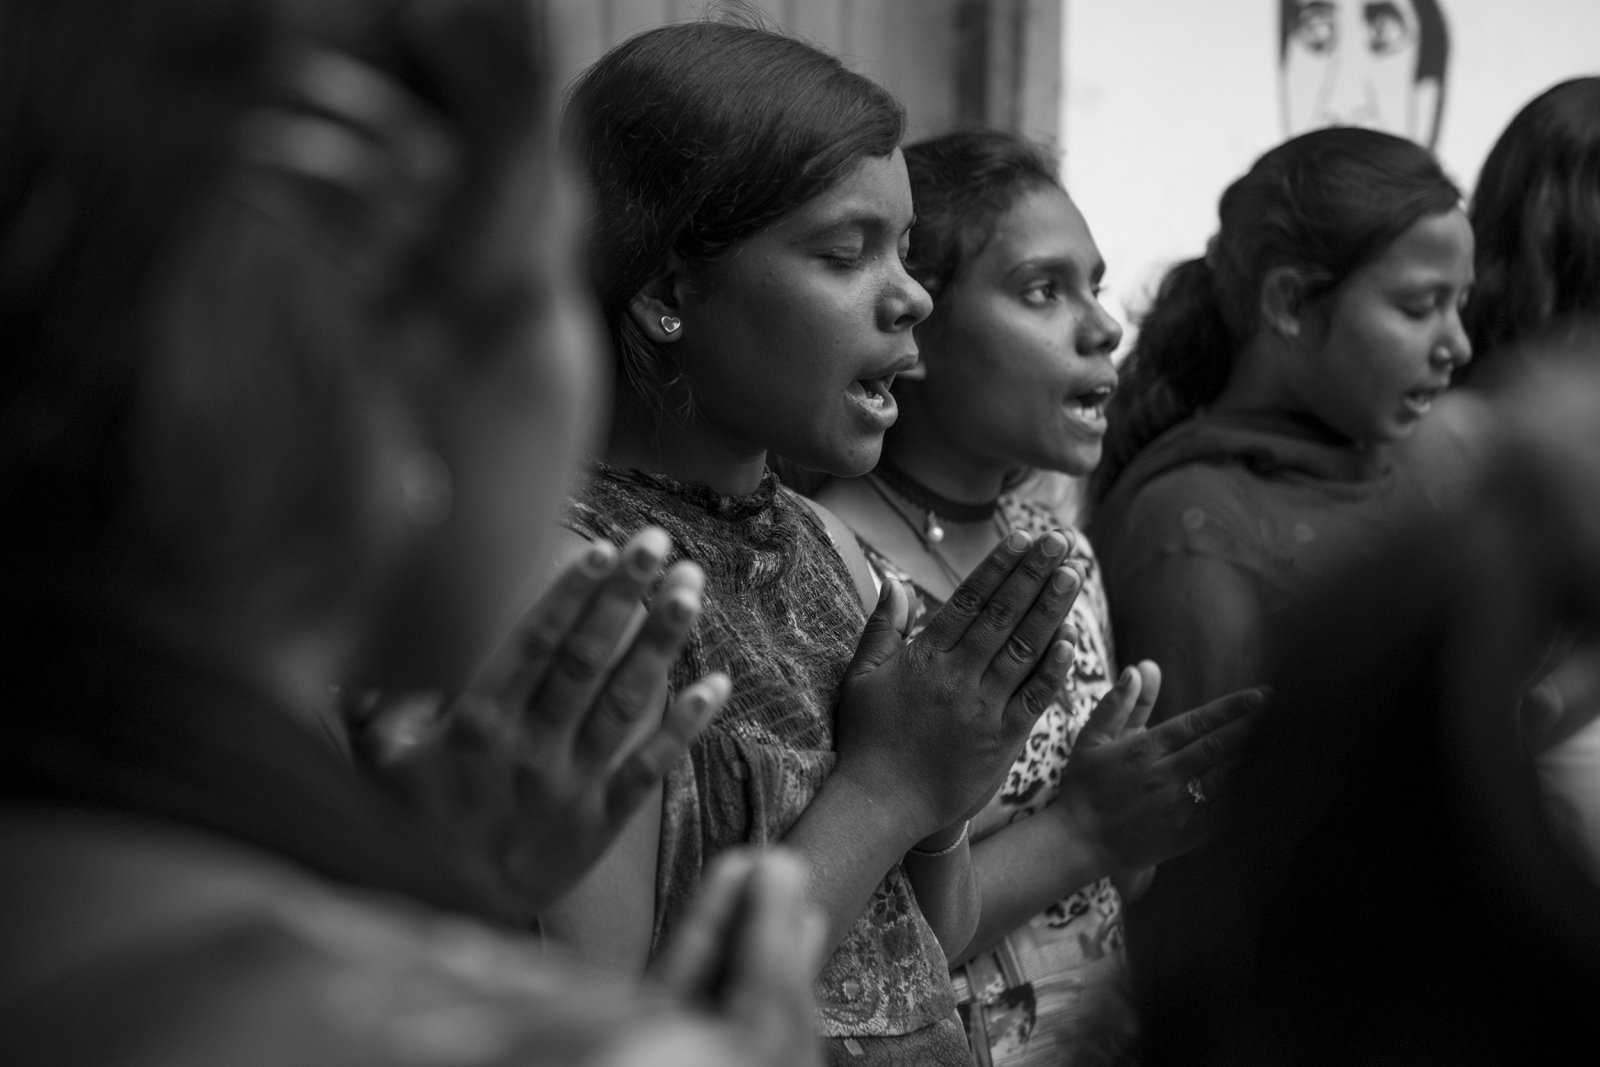 The Boarding School Saves Girls From Sex Trafficking By Vidhyaa C-6147